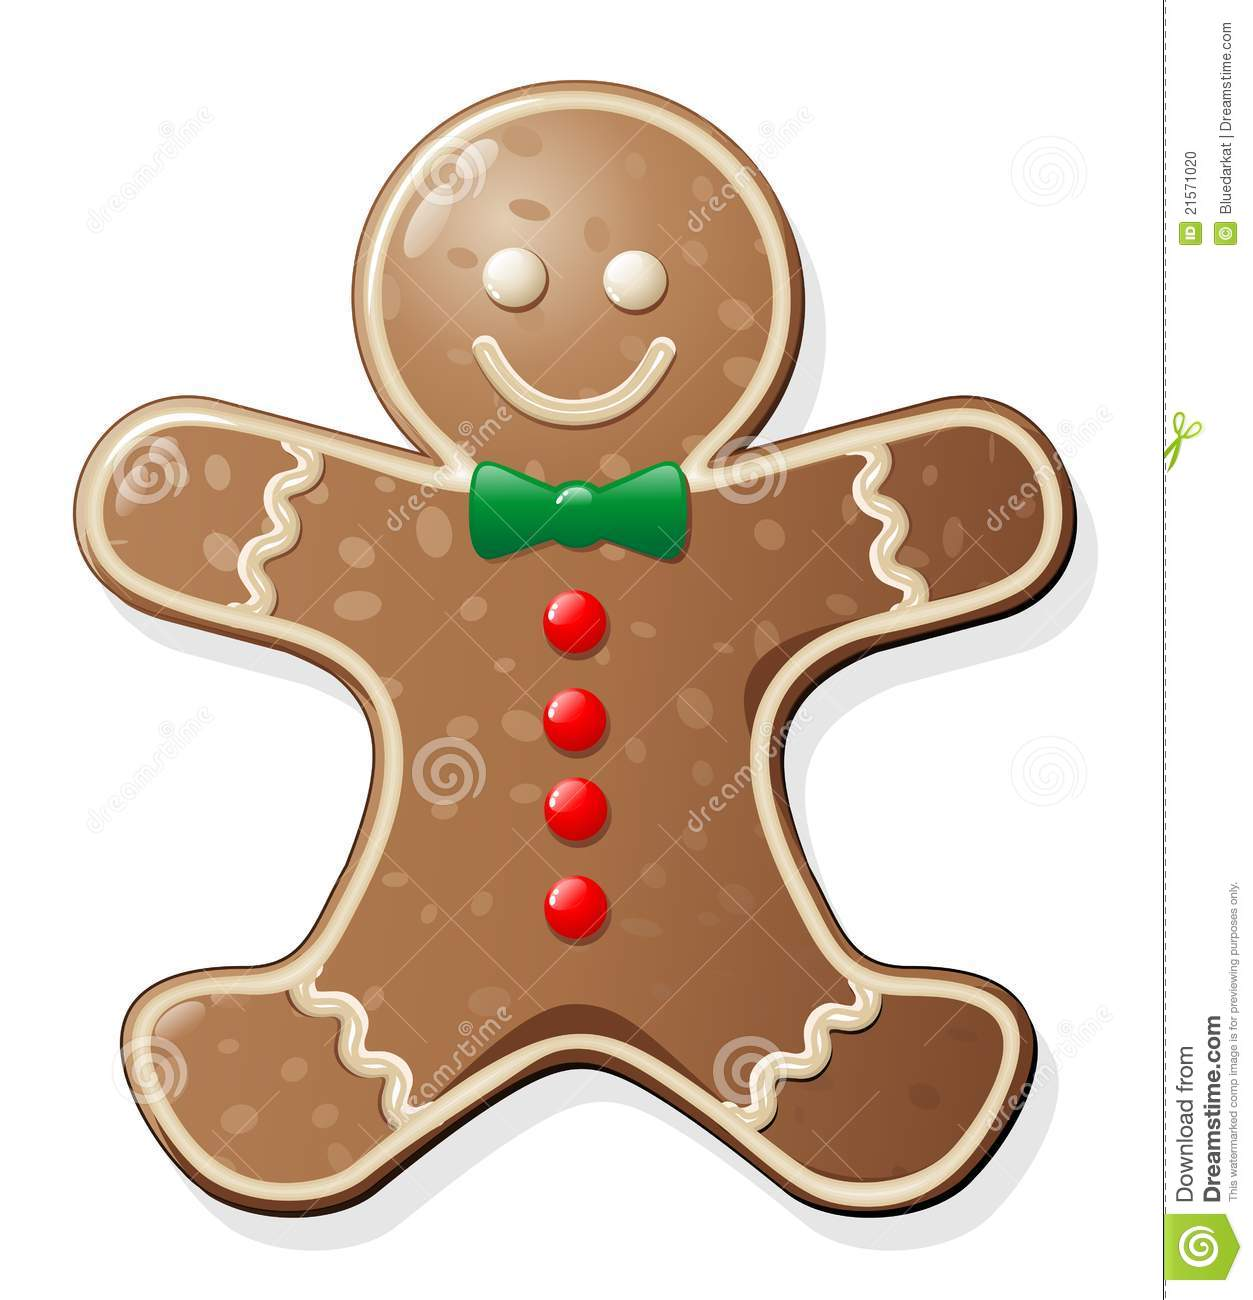 Gingerbread Man Cookie stock vector. Illustration of symbolic - 21571020